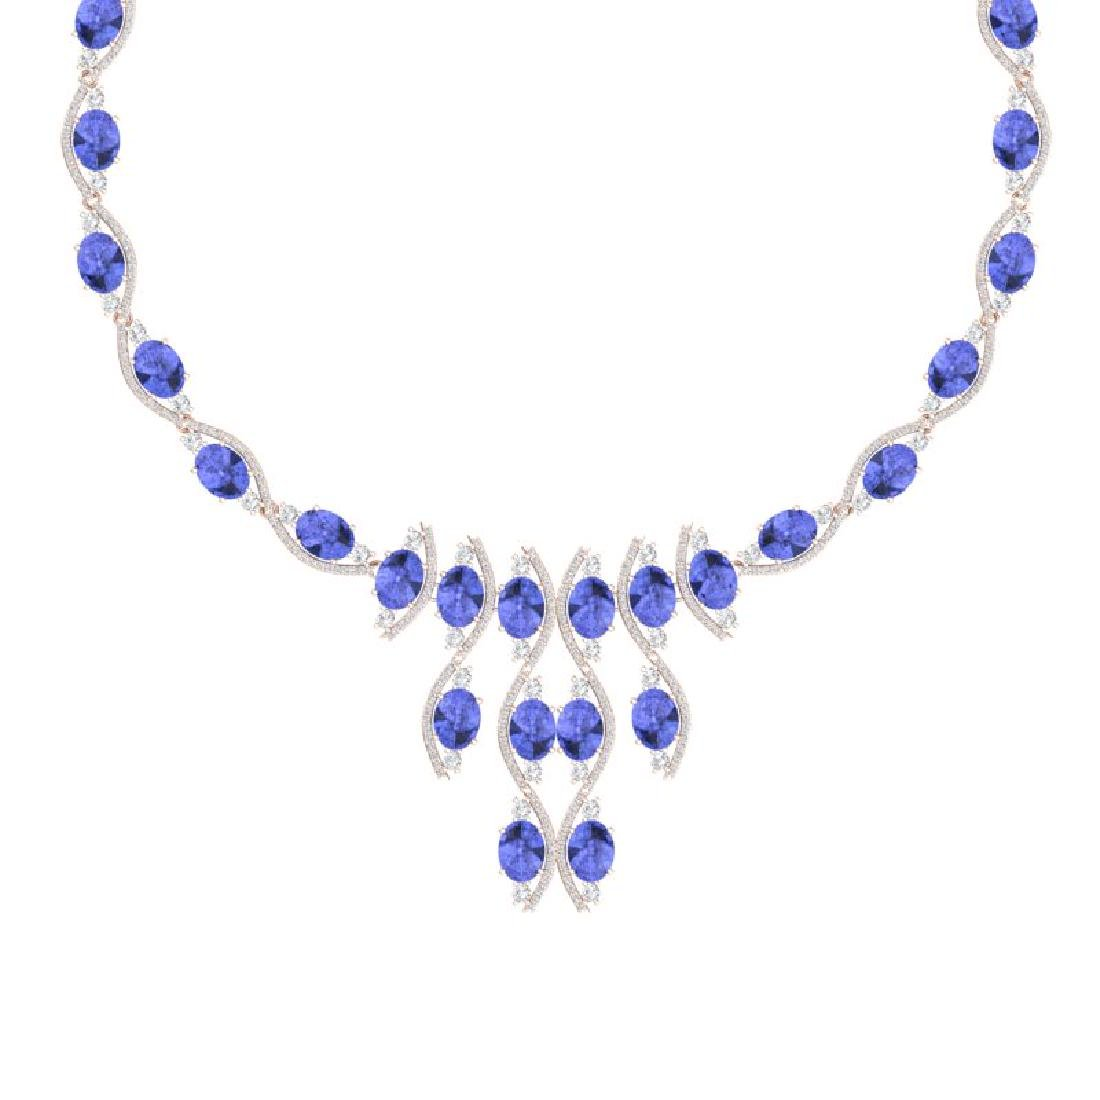 65.60 CTW Royalty Tanzanite & VS Diamond Necklace 18K - 2